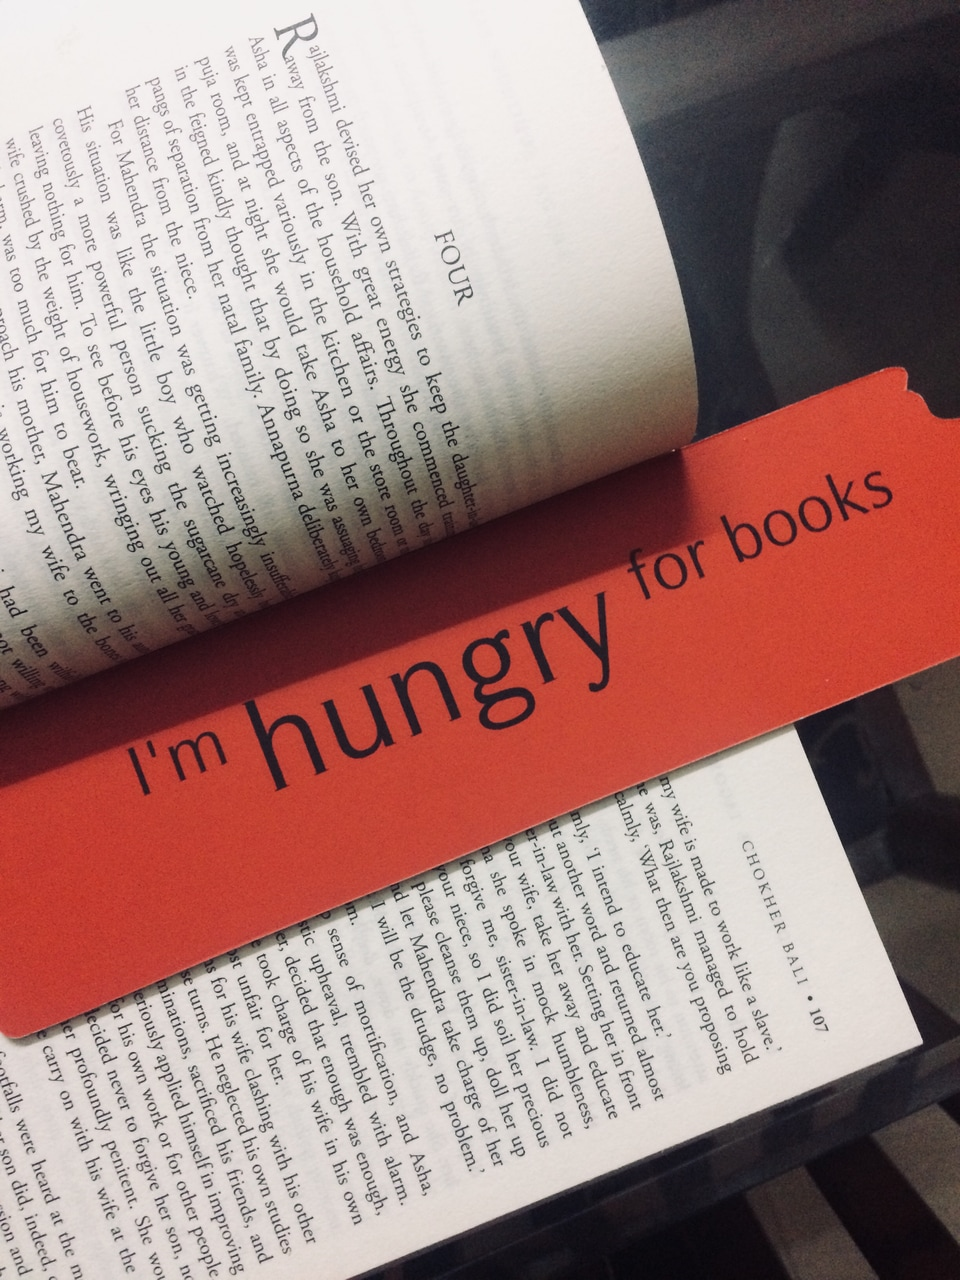 308 Images About Books Many Of Them On We Heart It See More